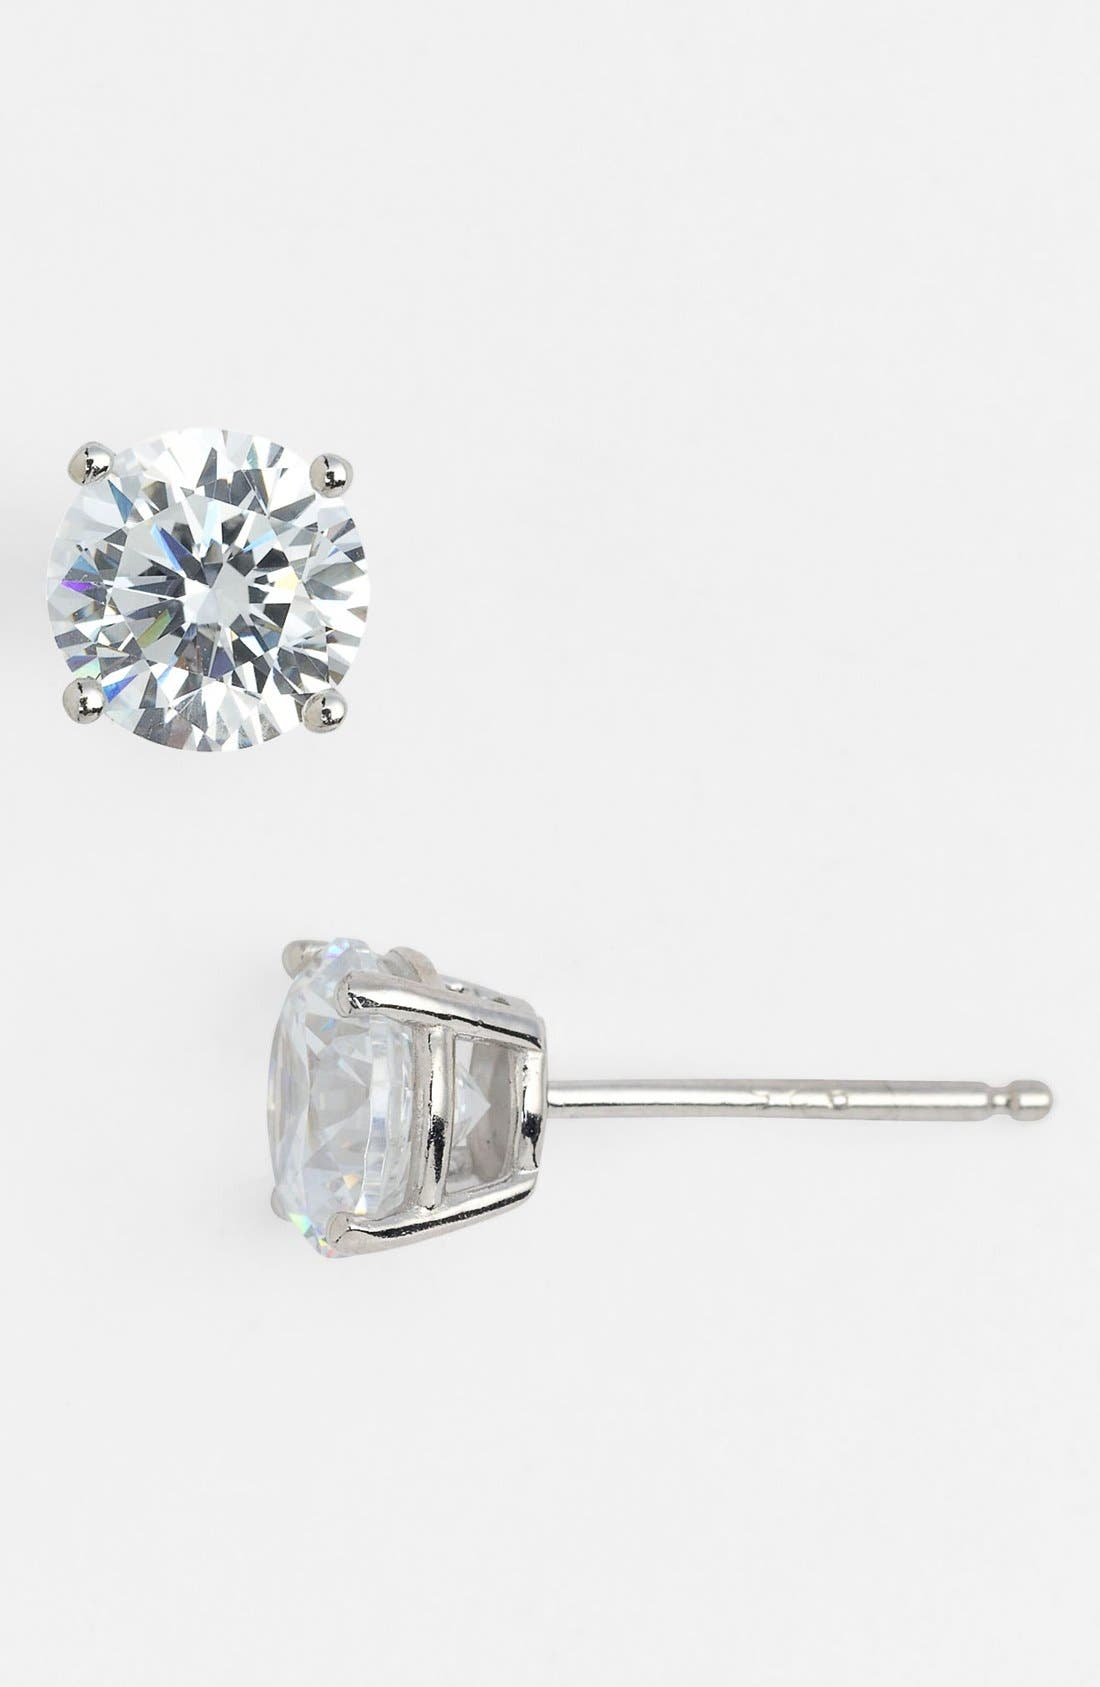 Alternate Image 1 Selected - Nordstrom 2ct tw Cubic Zirconia Stud Earrings (Special Purchase)